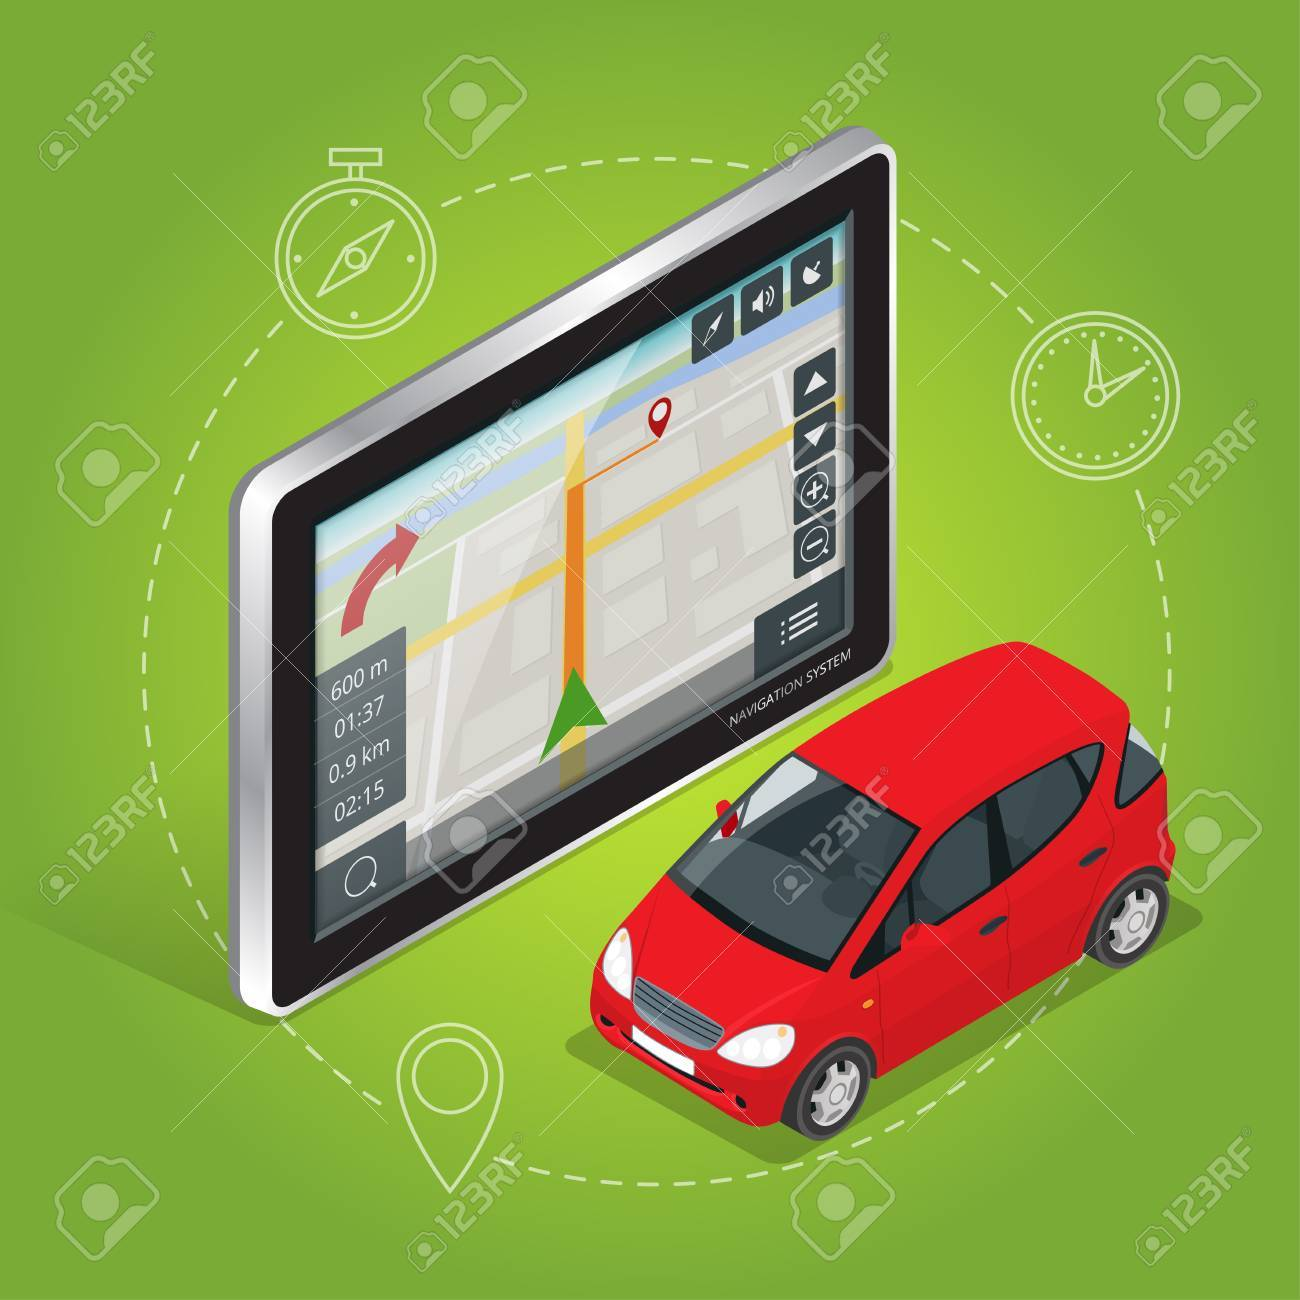 Geolocation gps navigation touch screen tablet  Mobile GPS navigation